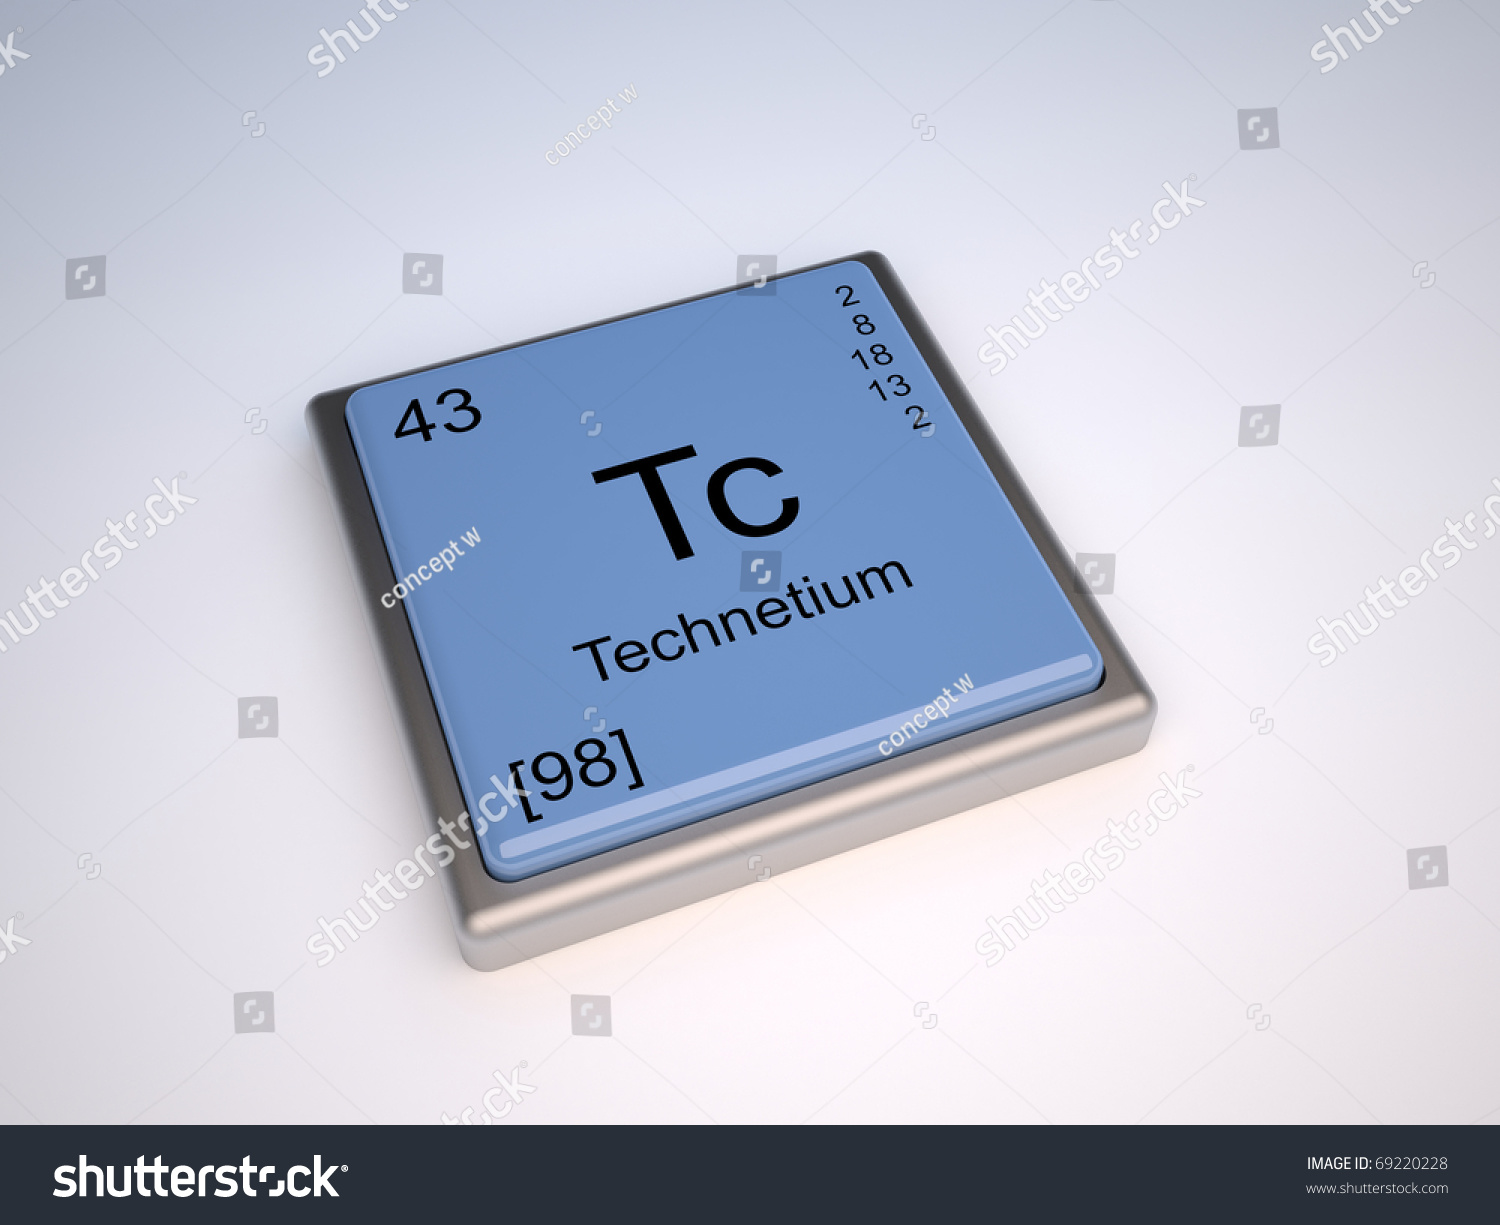 Tc in periodic table gallery periodic table images technetium chemical element periodic table symbol stock technetium chemical element of the periodic table with symbol gamestrikefo Image collections